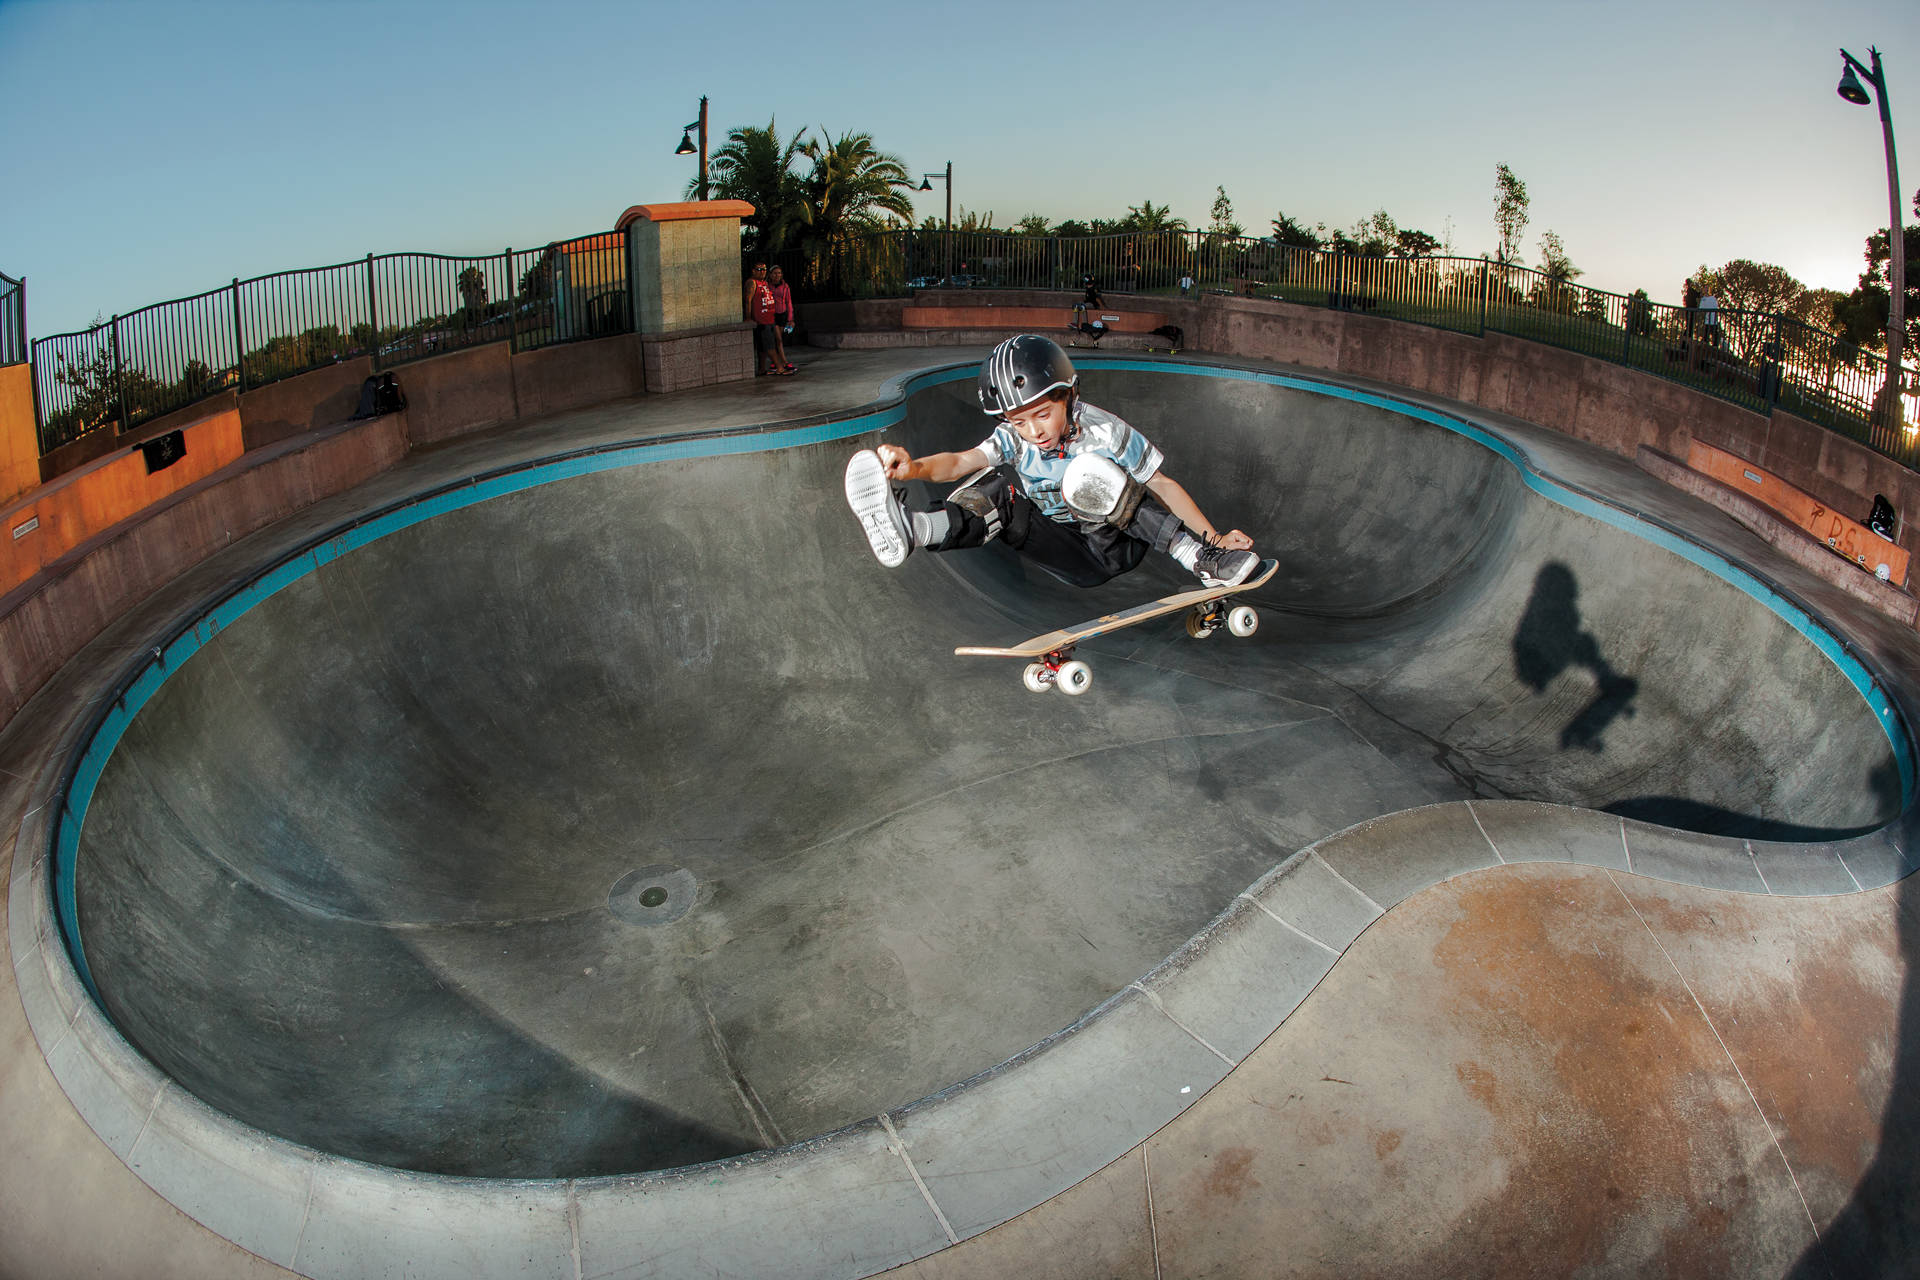 GAVIN BOTTGER -- From Berrics Magazine Issue 1